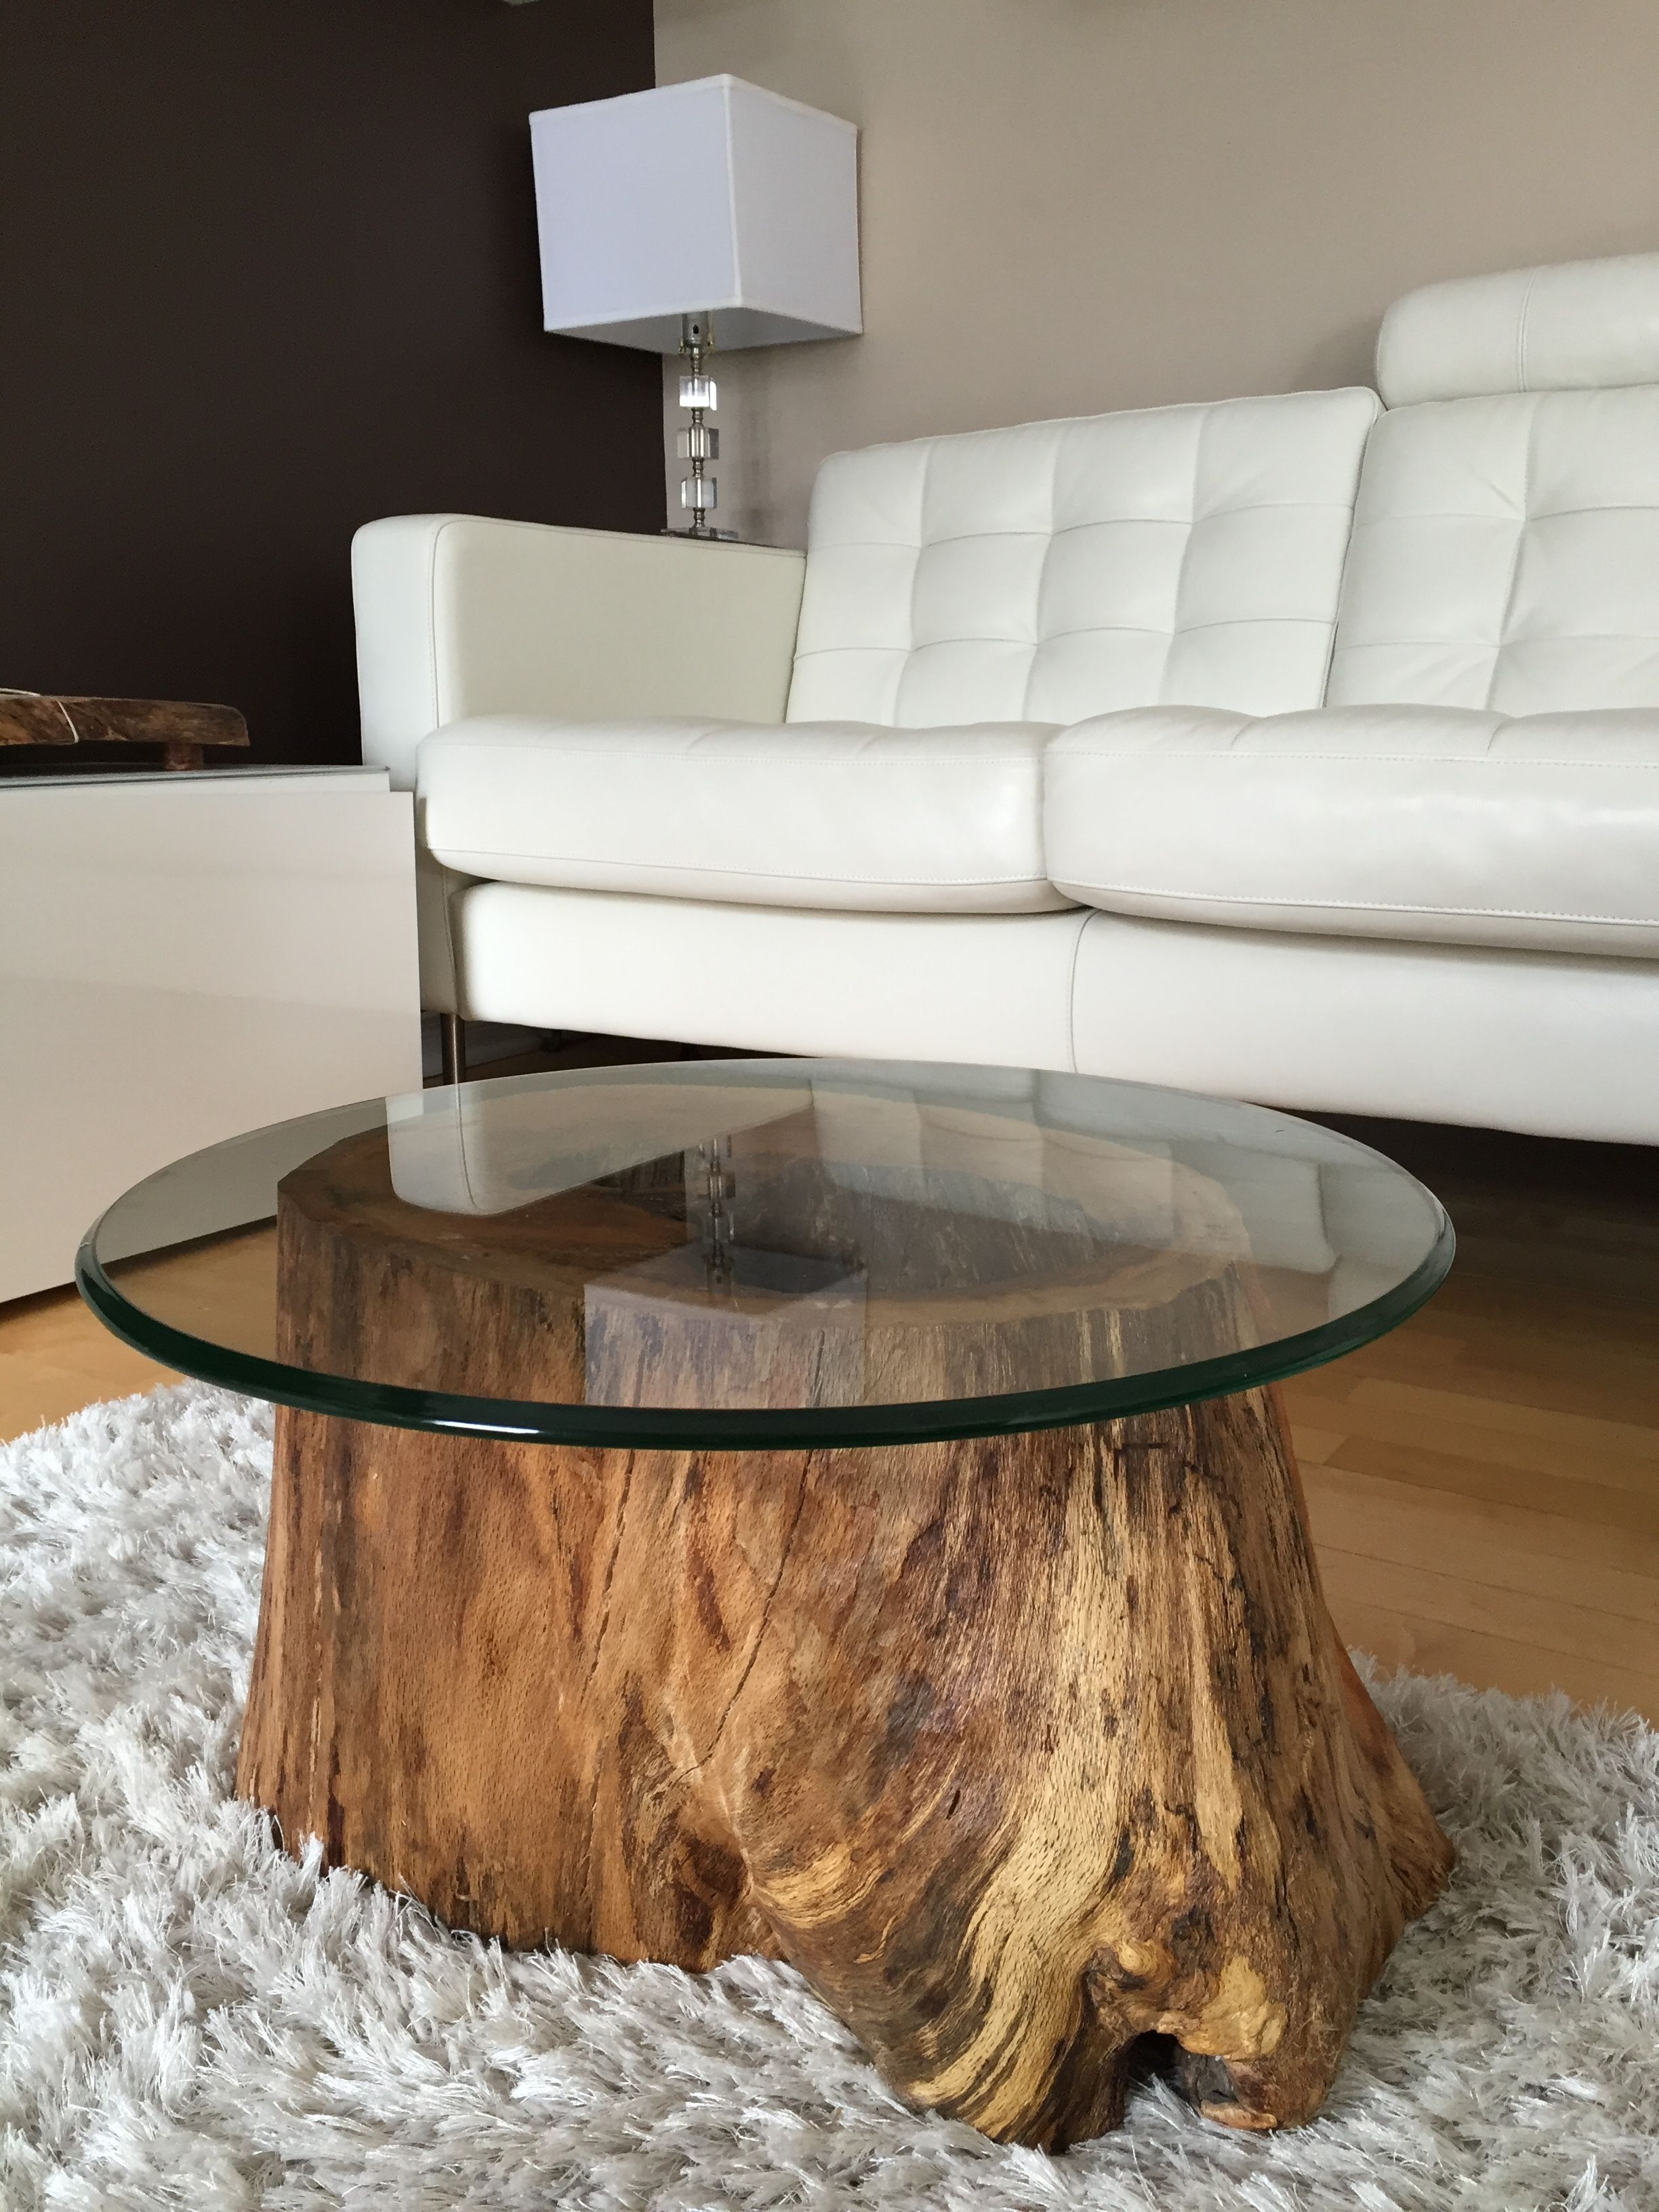 8 Glass For Coffee Table Top Replacement Uk Pics In 2020 Coffee Table Coffee Table Furniture Log Coffee Table